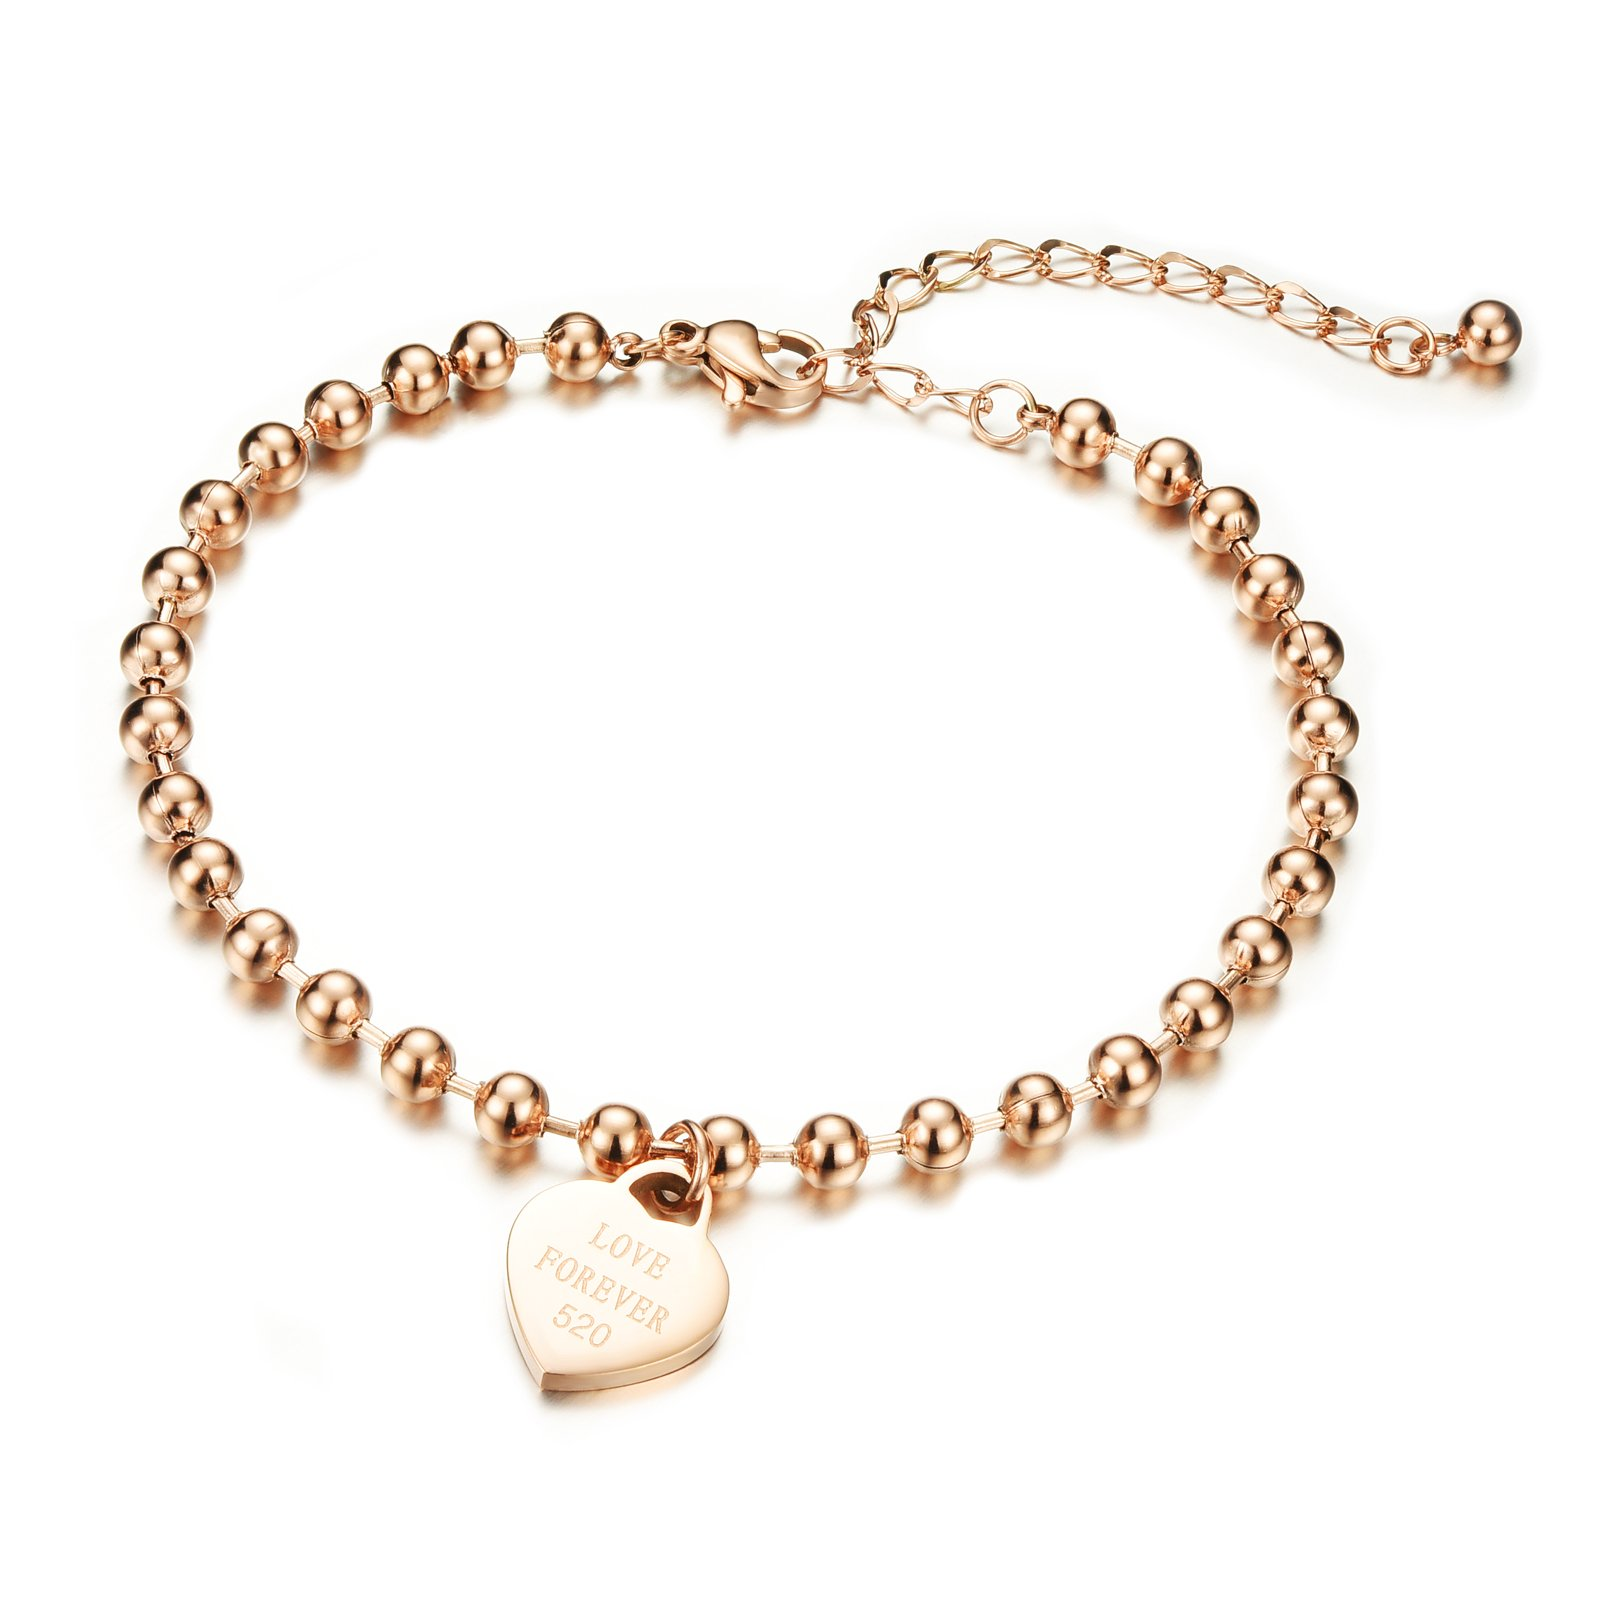 Fashion Jewelry Titanium Steel Rose Gold Bead Chain Heart Charm Anklets for Womens L7.8+0.23''